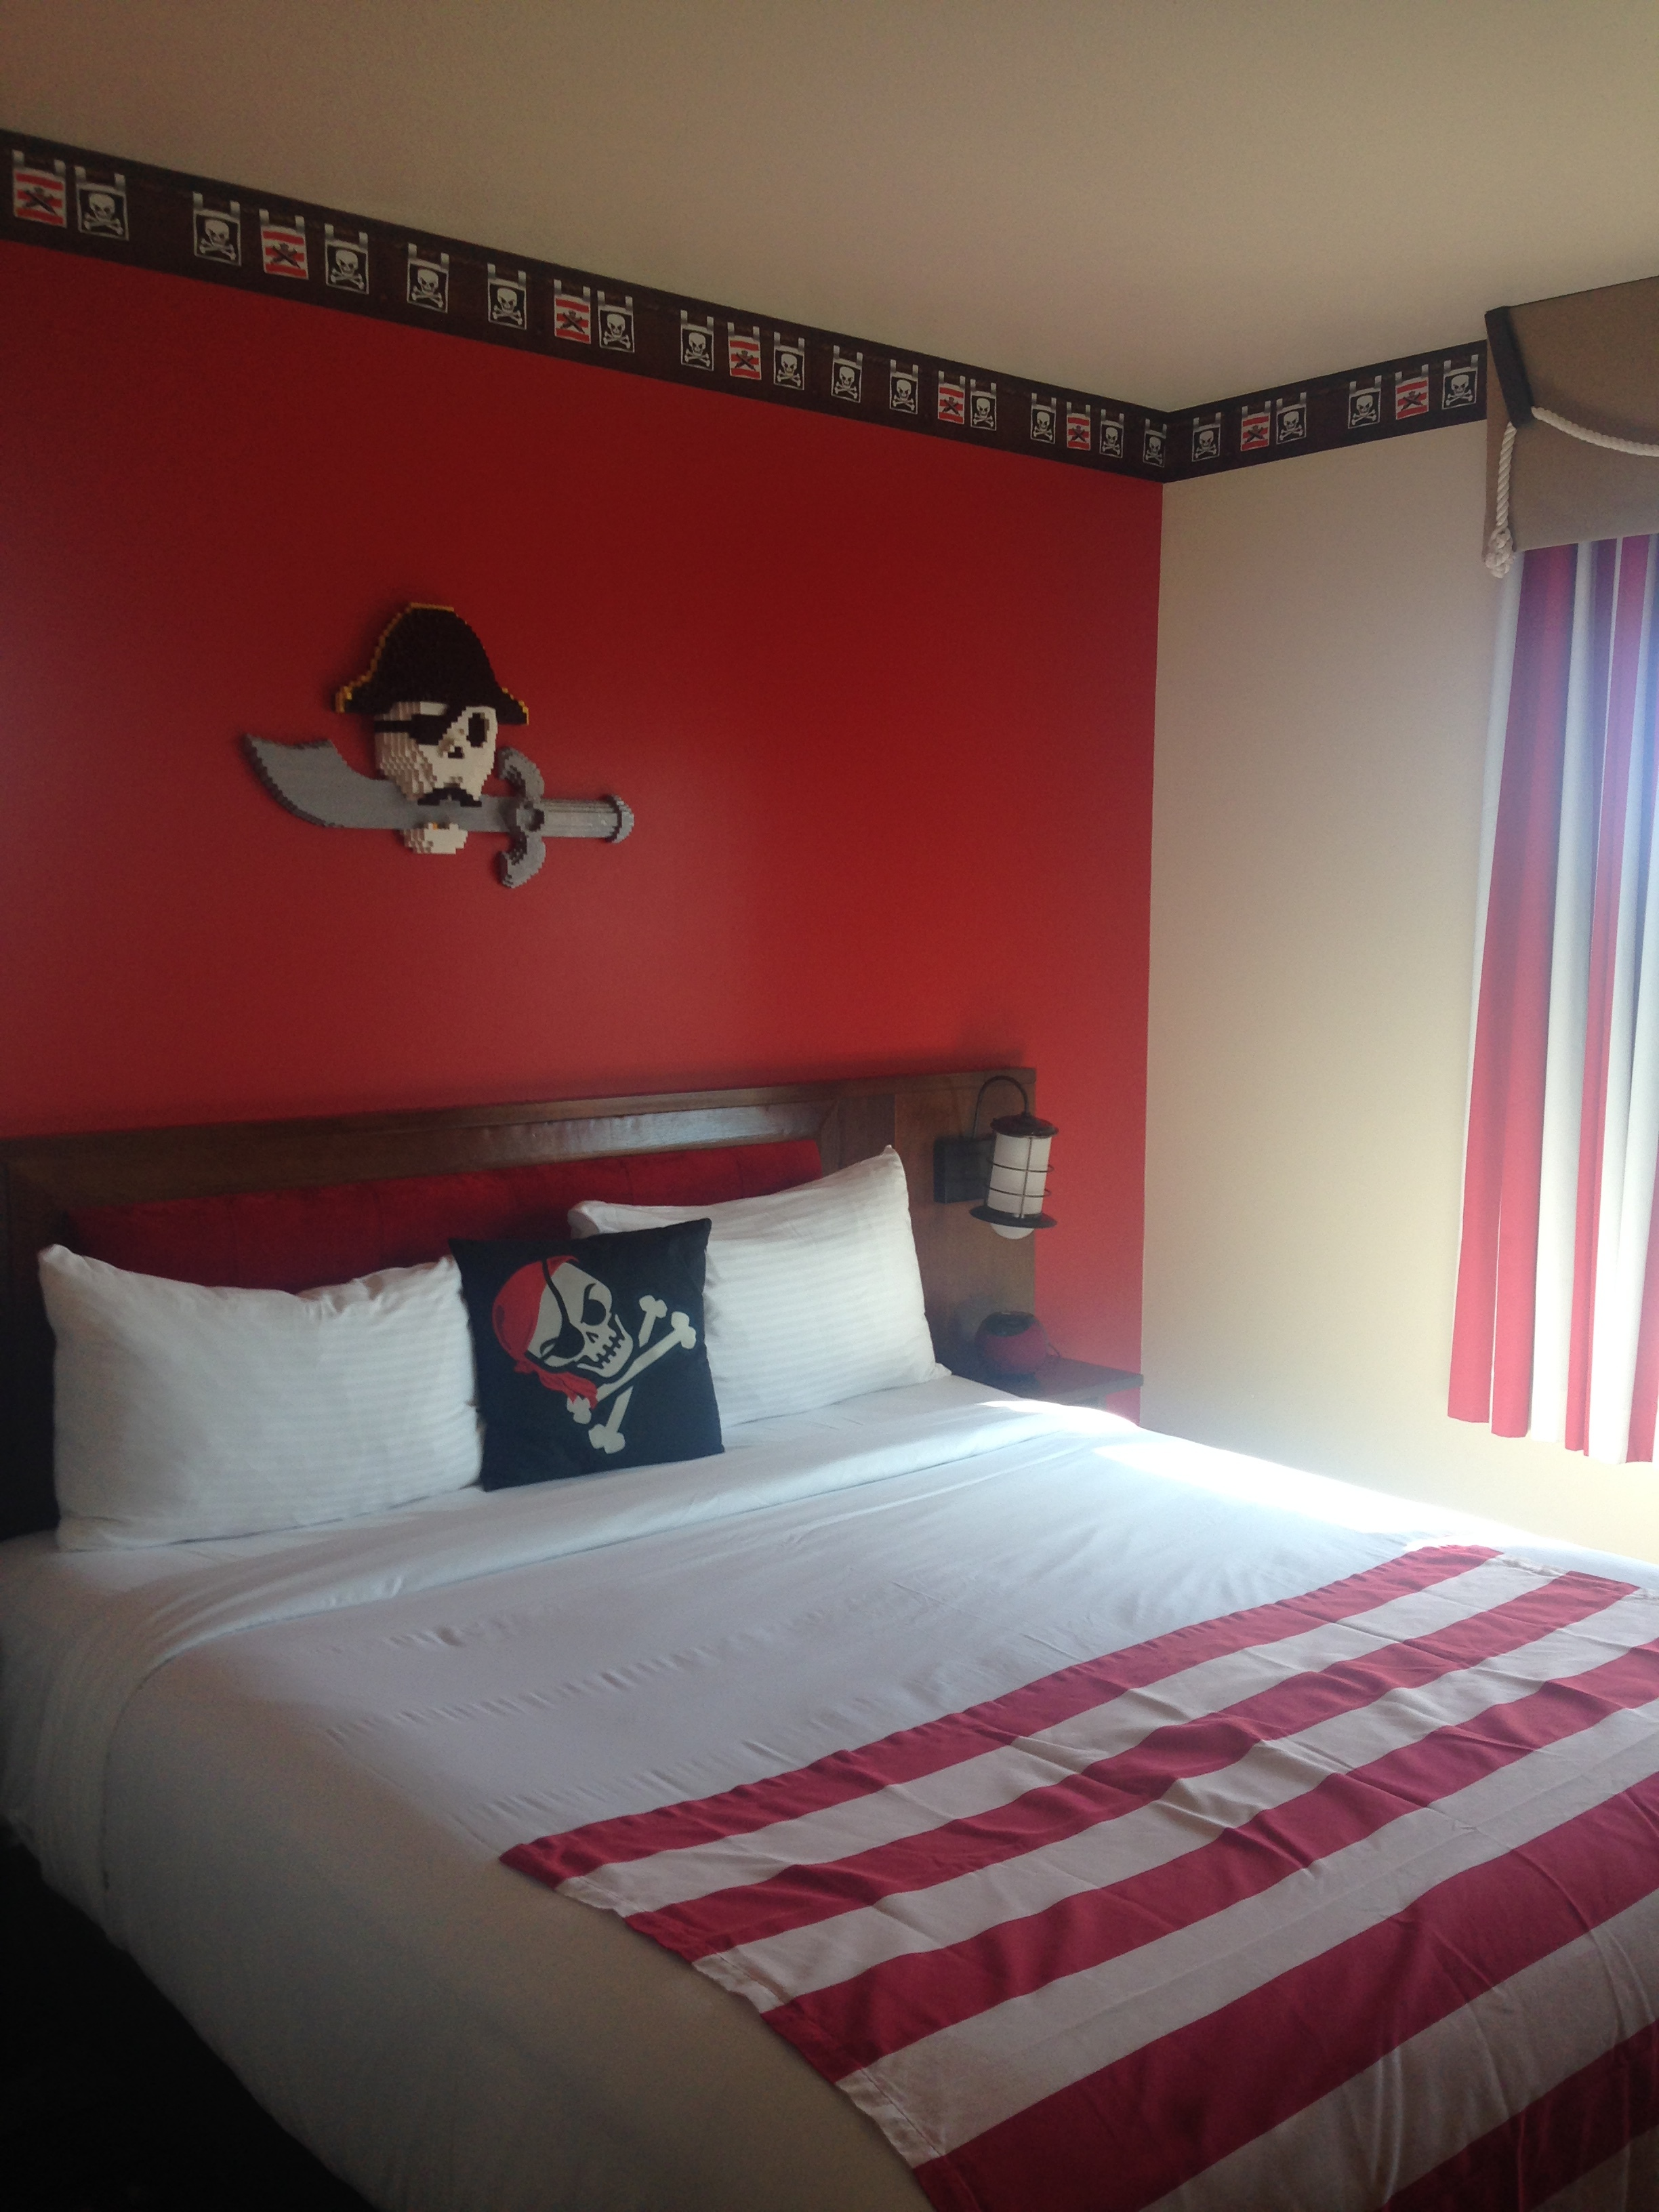 Our Pirate themed room